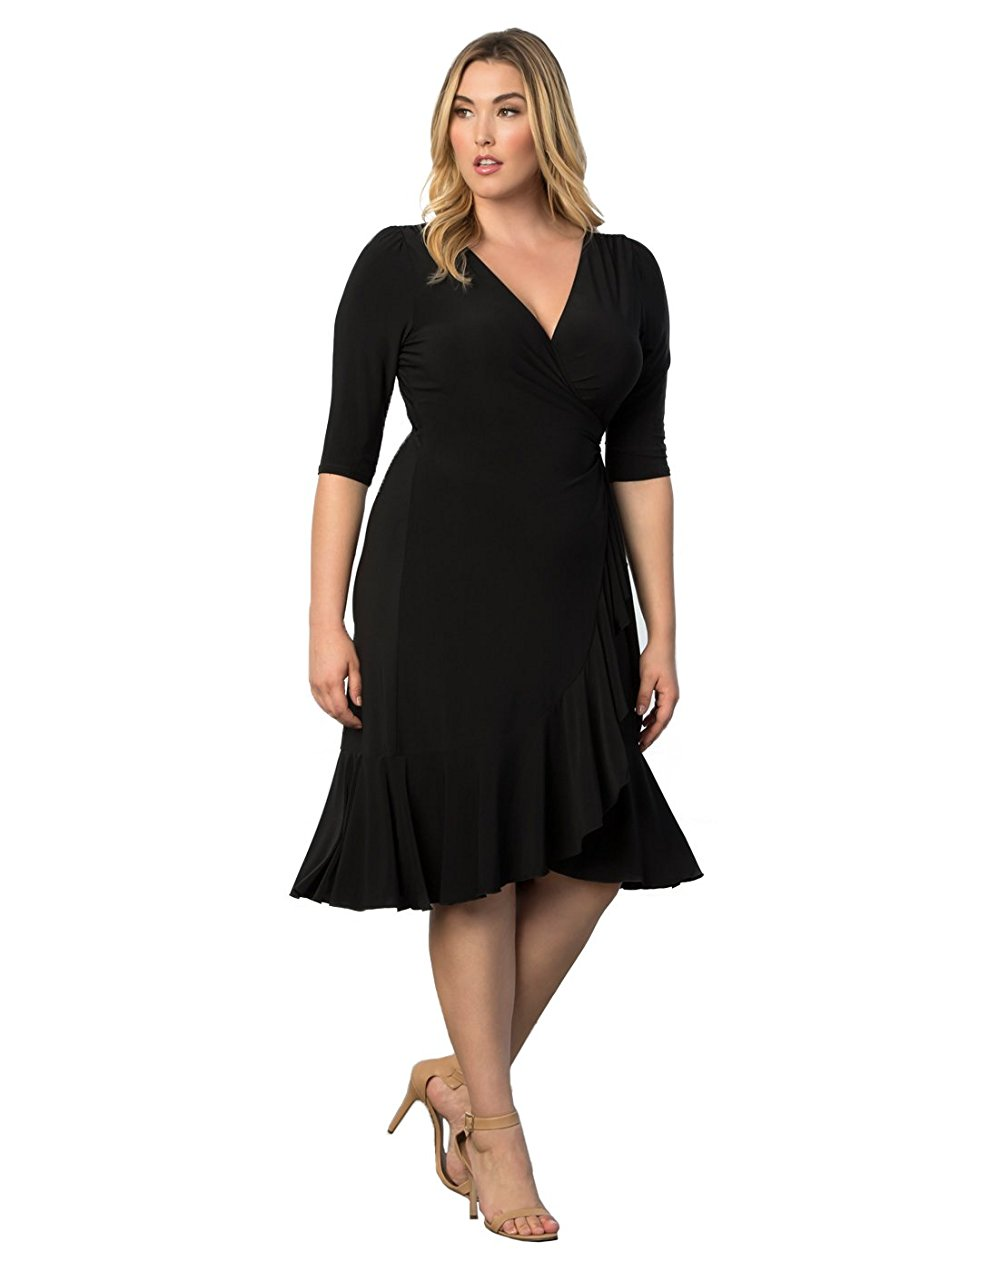 Tips for buying plus-size holiday dresses